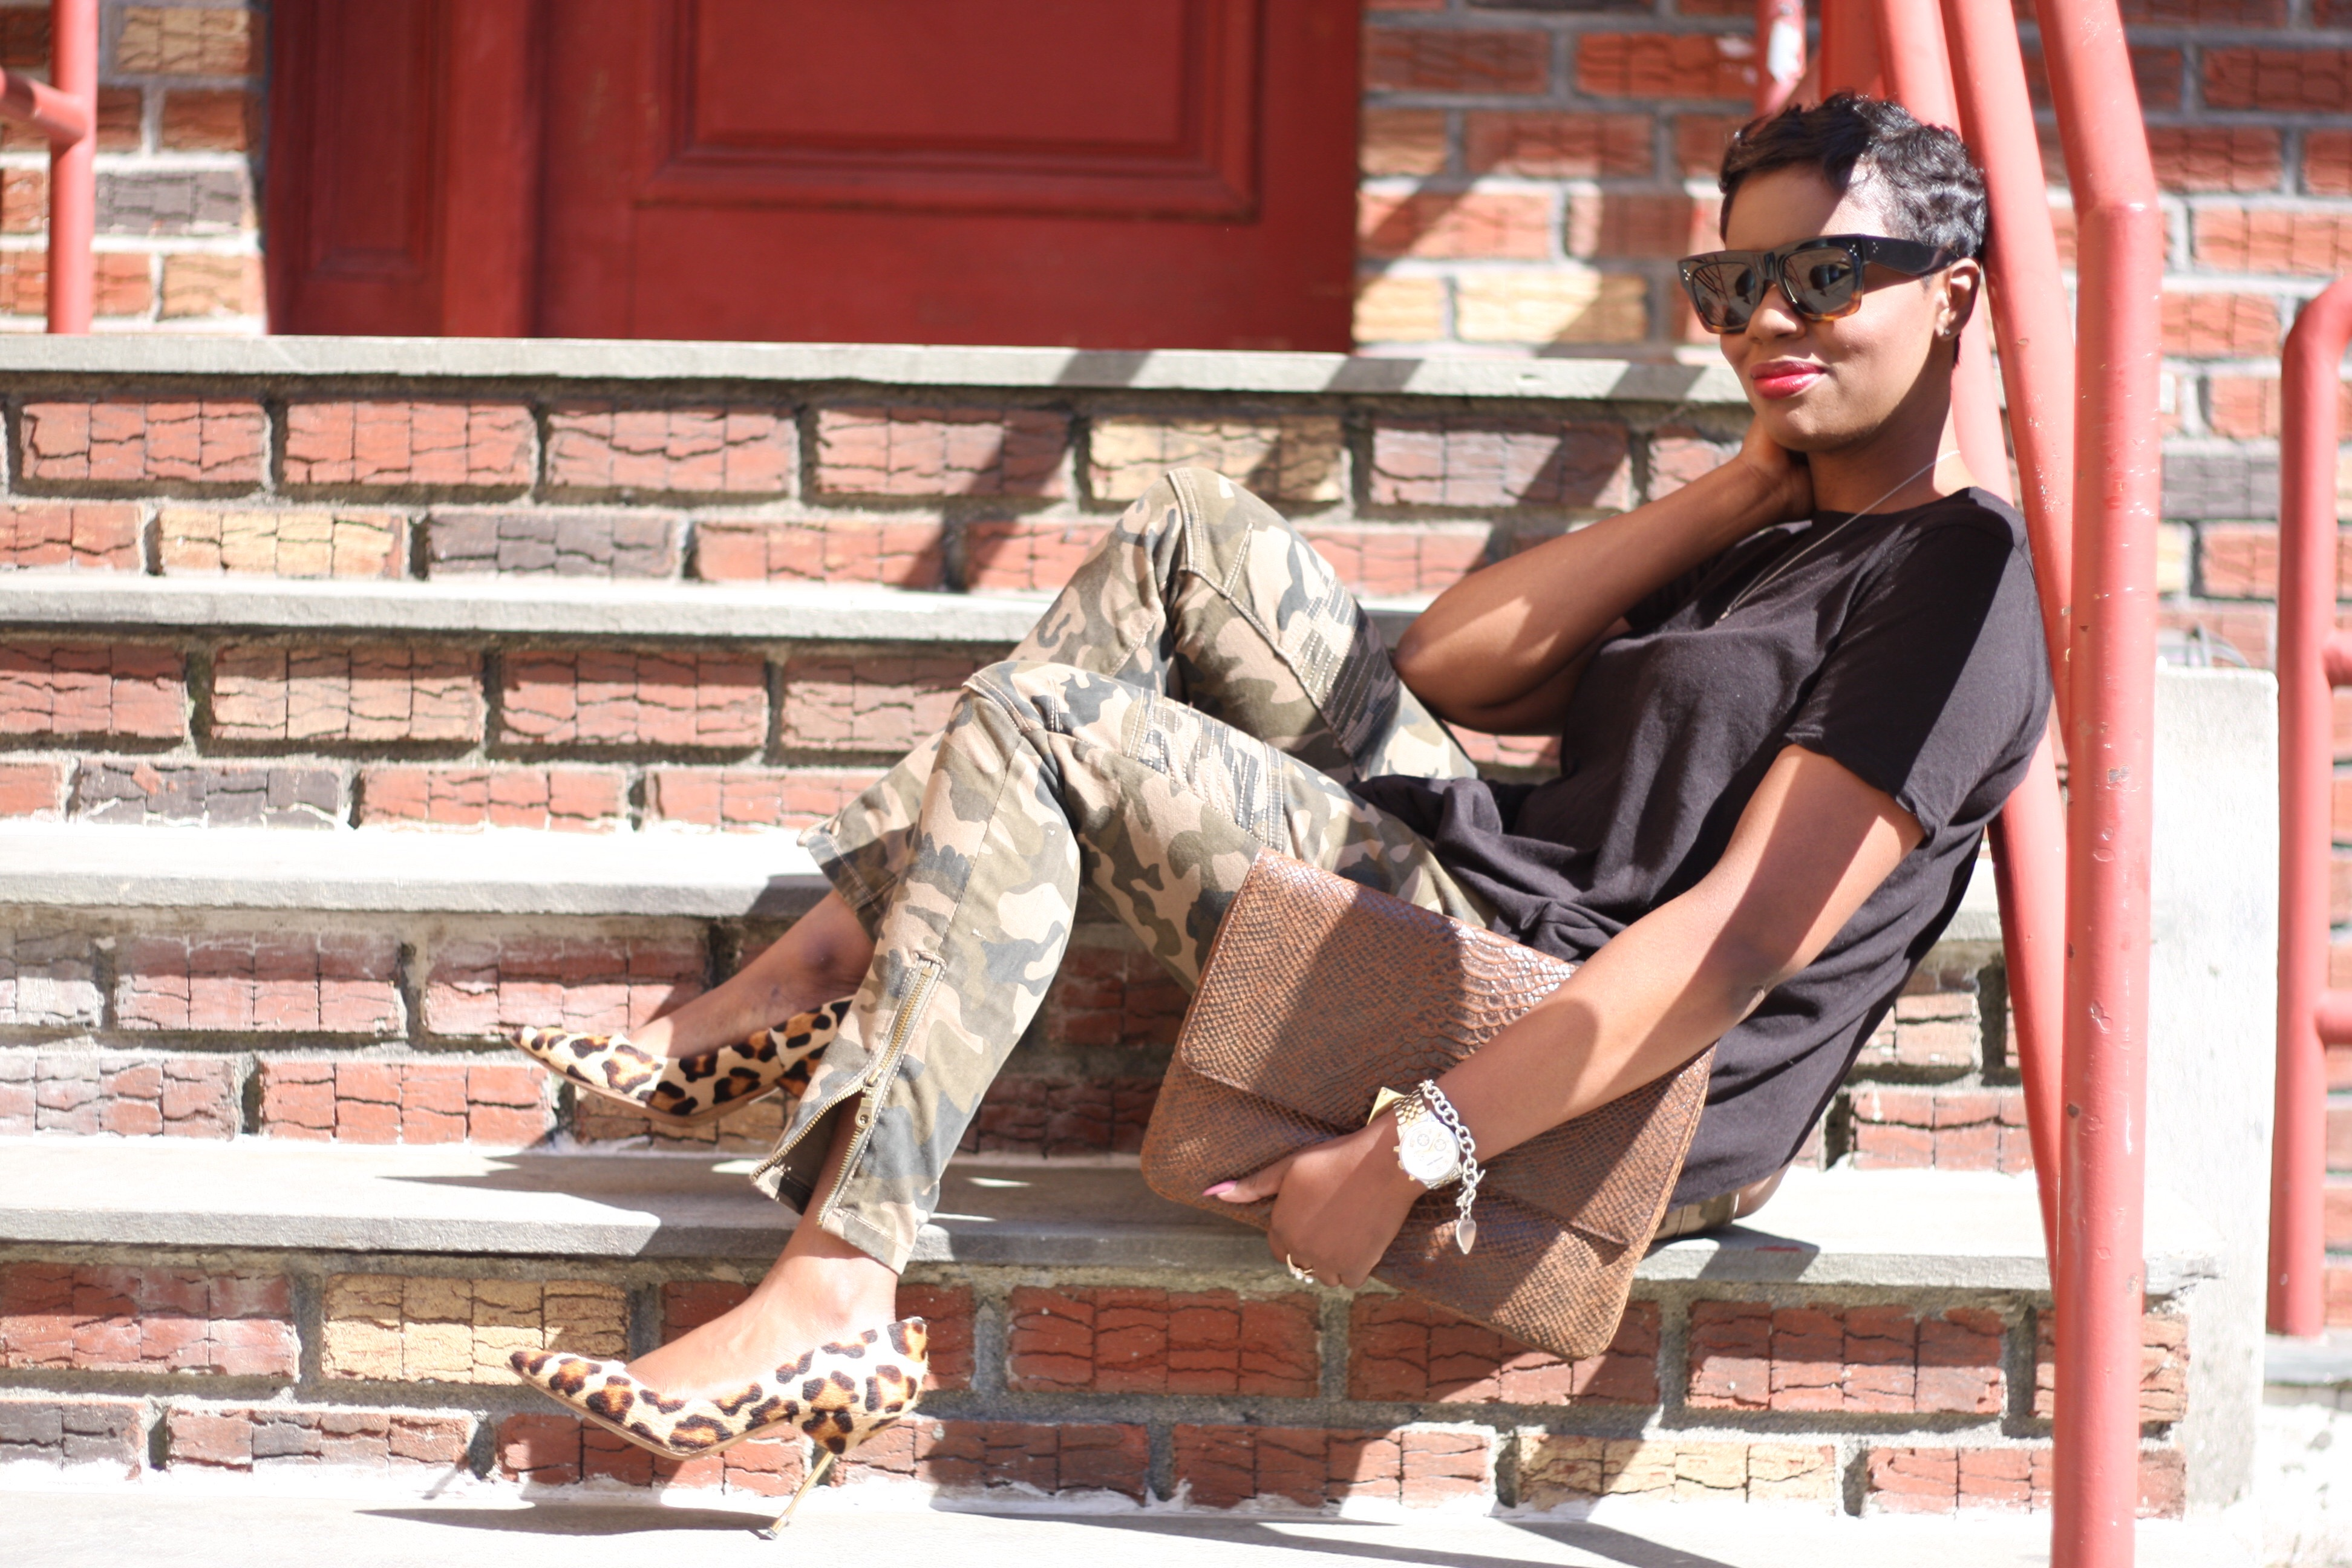 Black Open Back Top Camo Pants Leopard Pumps Oversized Clutch NYC Style Blogger Spring 2016